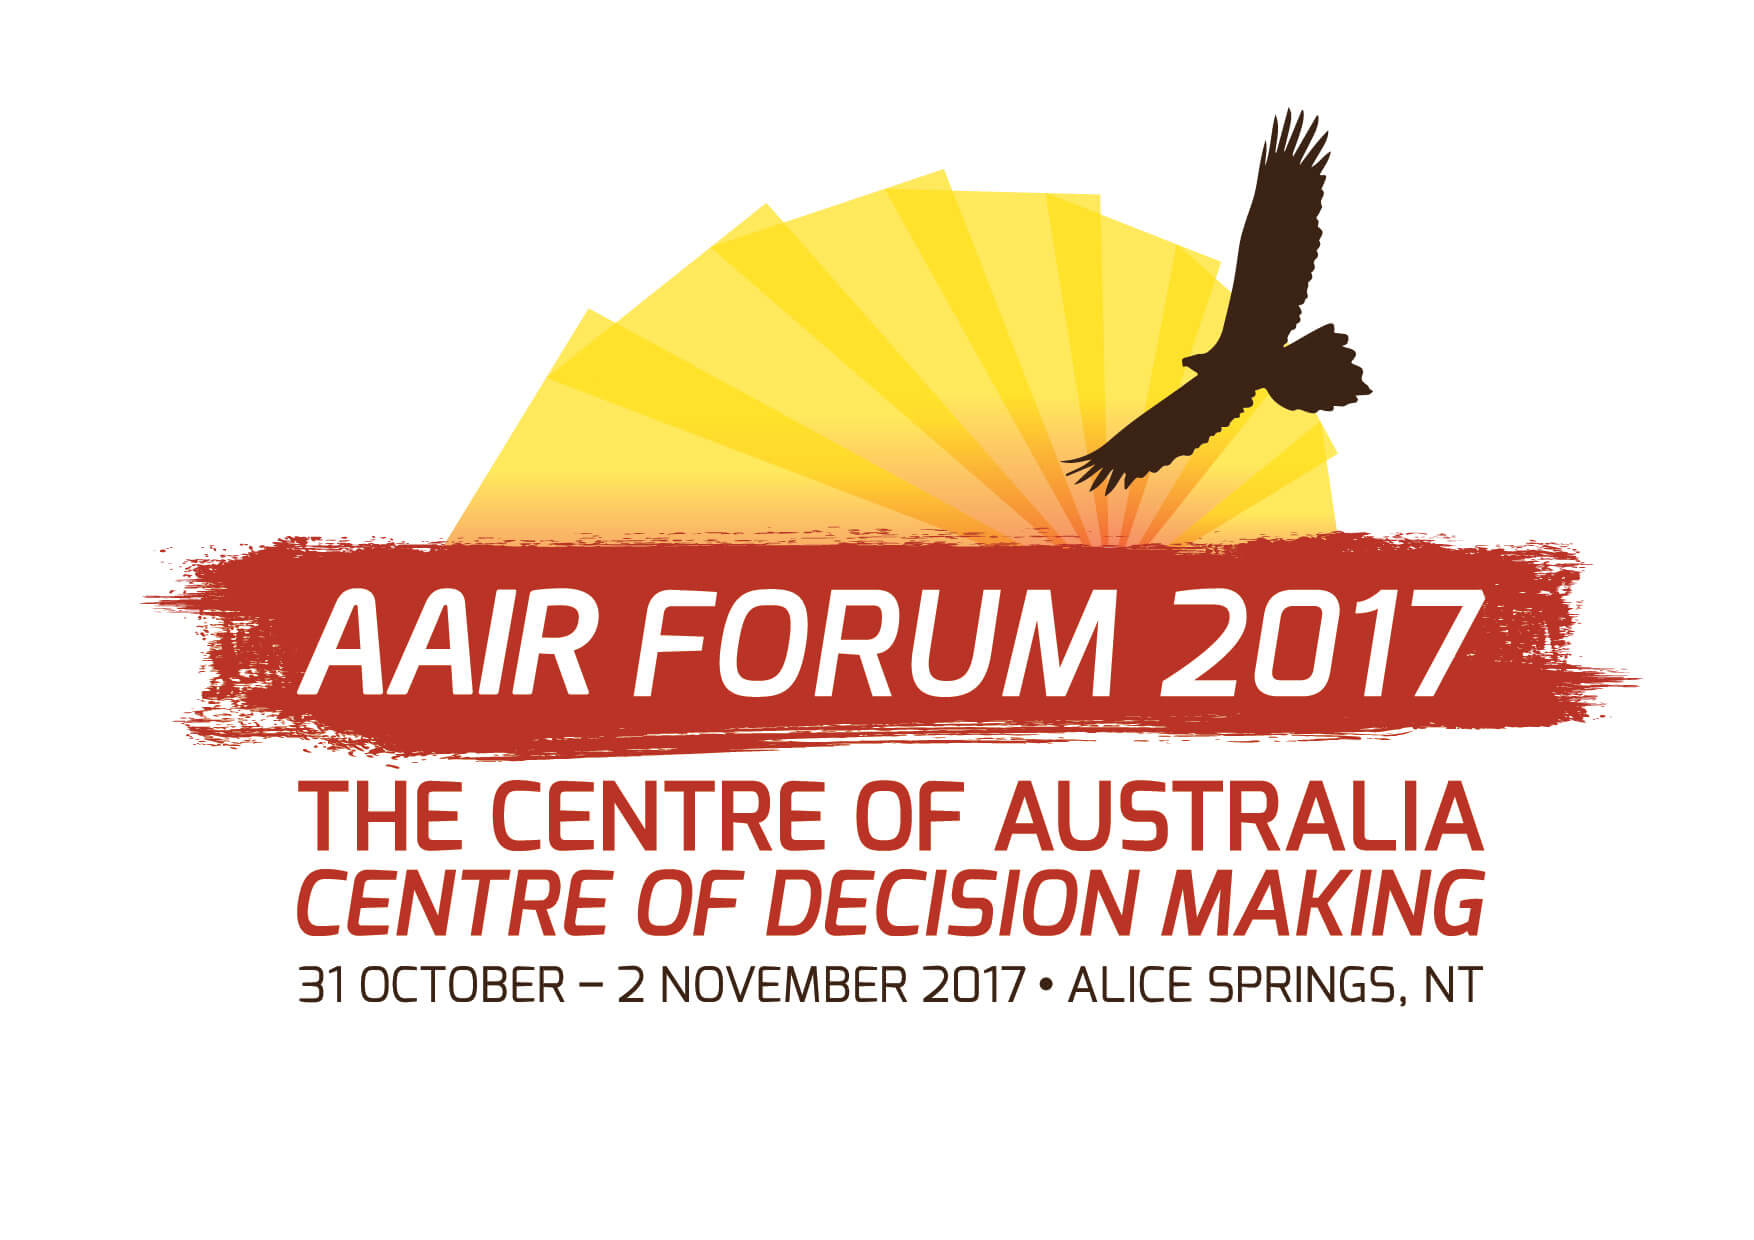 AAIR Forum 2017 logo showing a bird flying through the sun